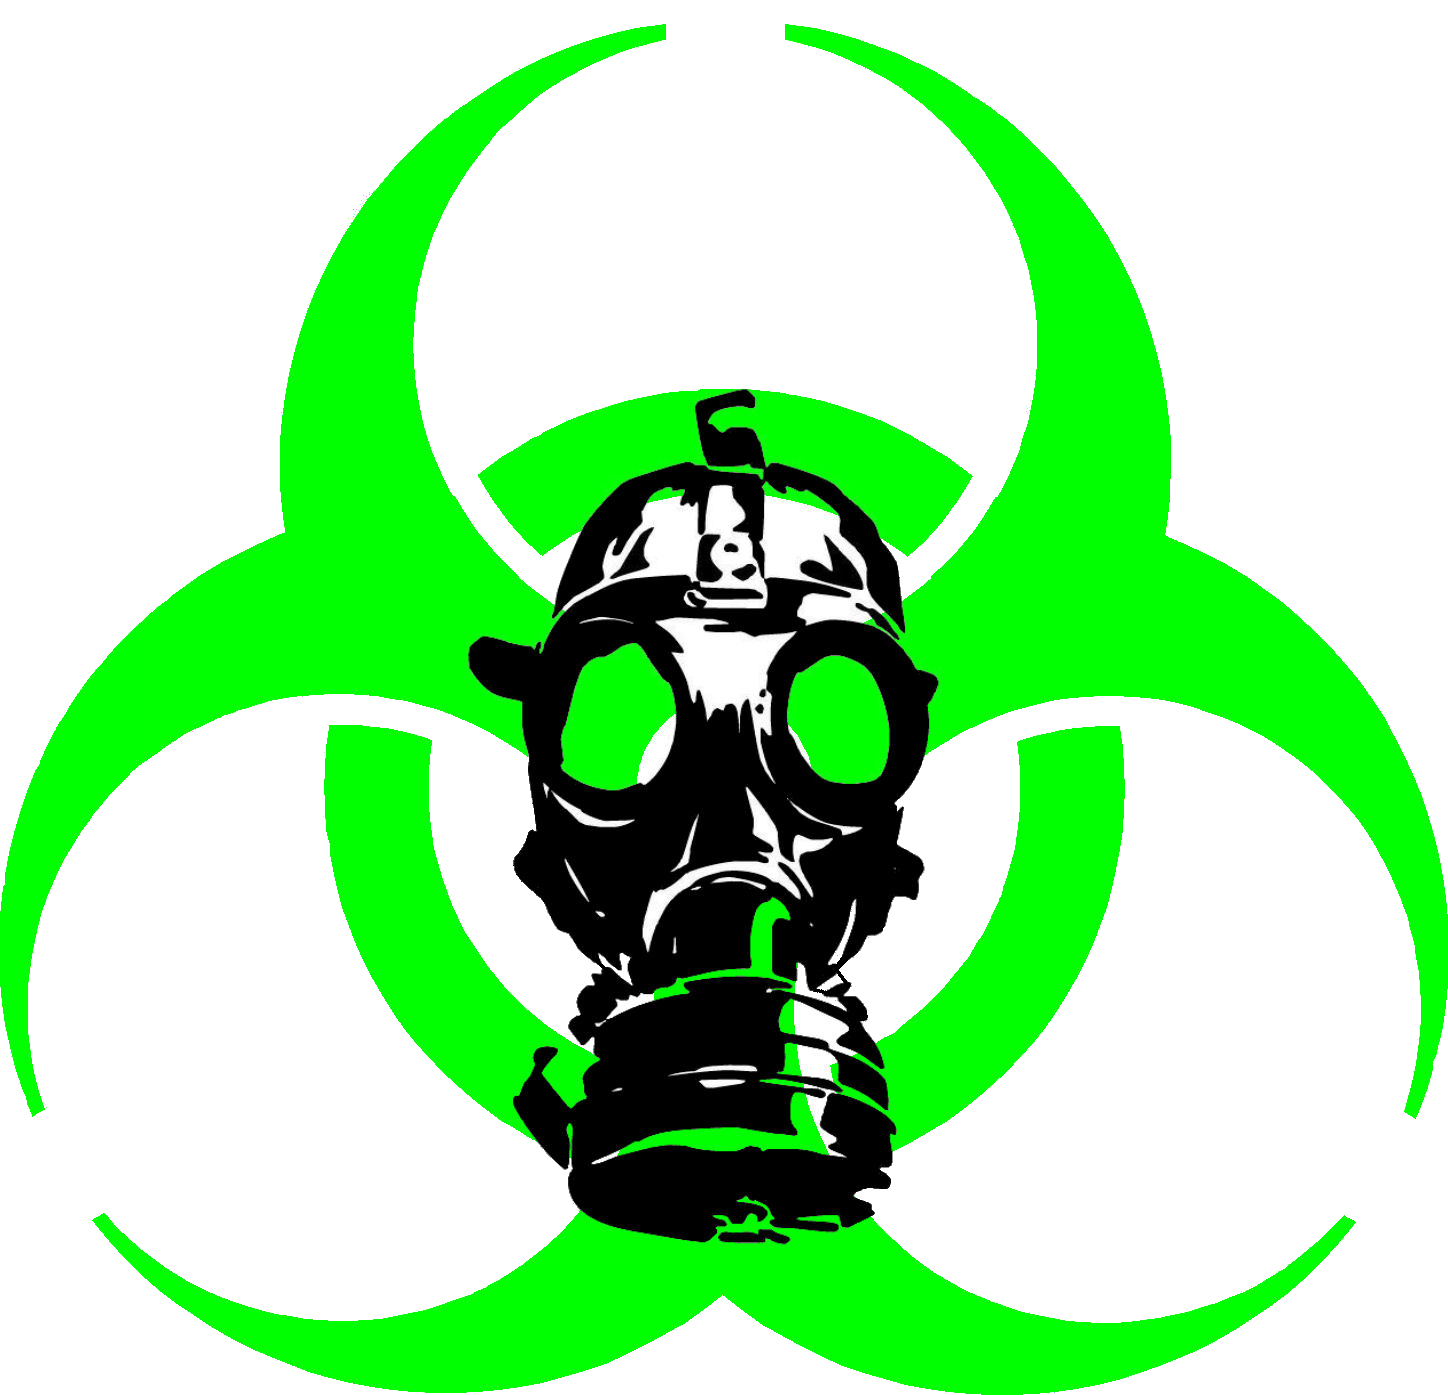 Gas Mask clipart biohazard And vector com Mask Images